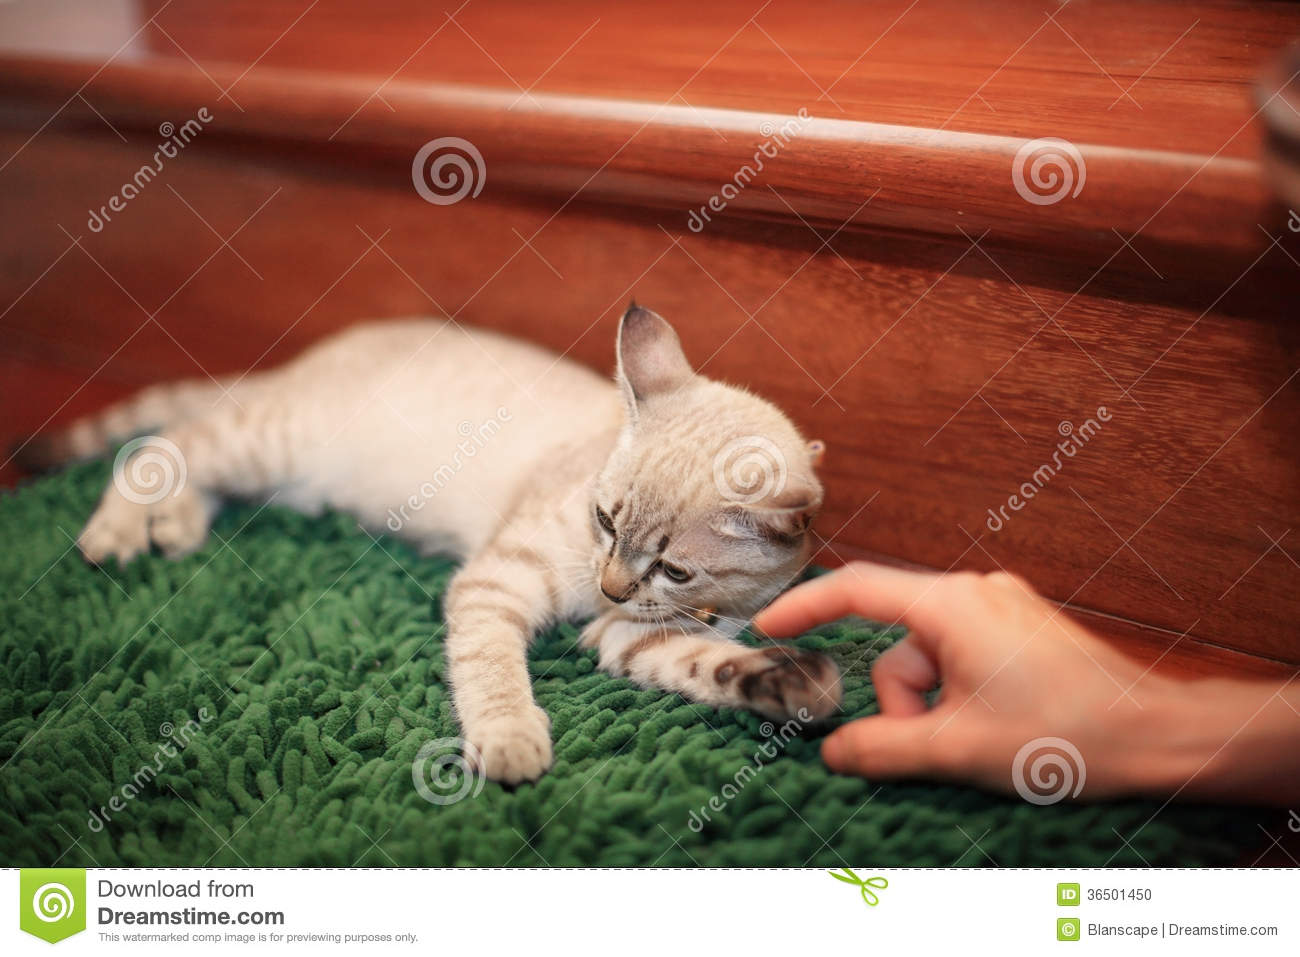 Cat teasted by human fingers